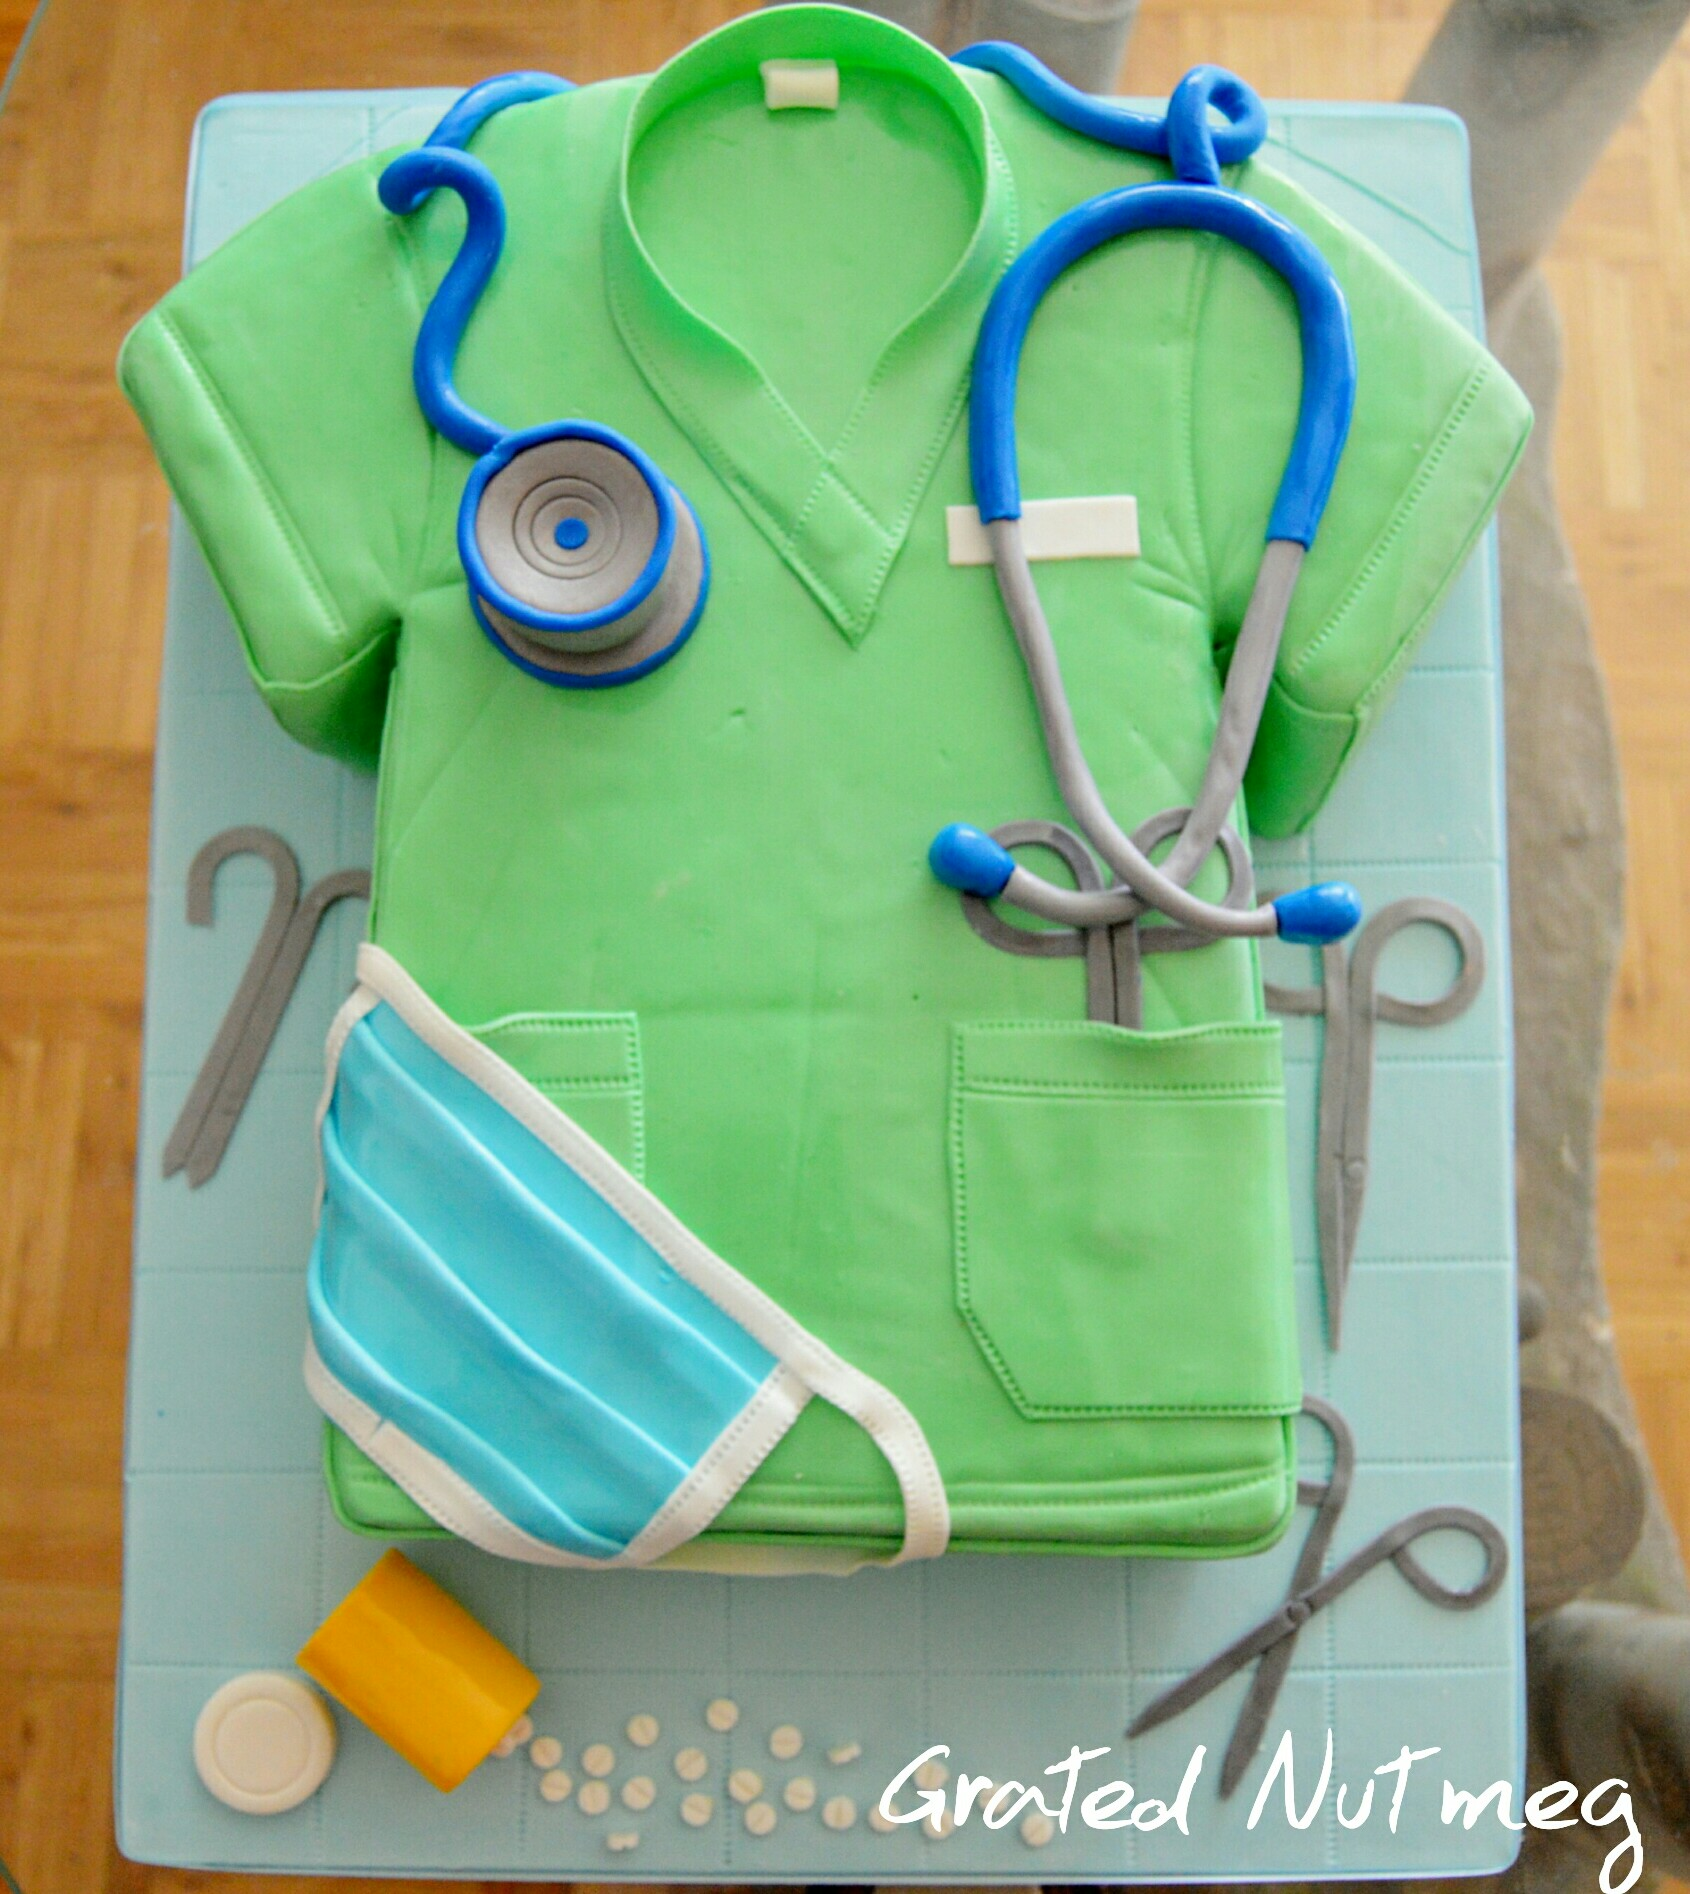 The Making Of A Surgeon Uniform Cake Grated Nutmeg